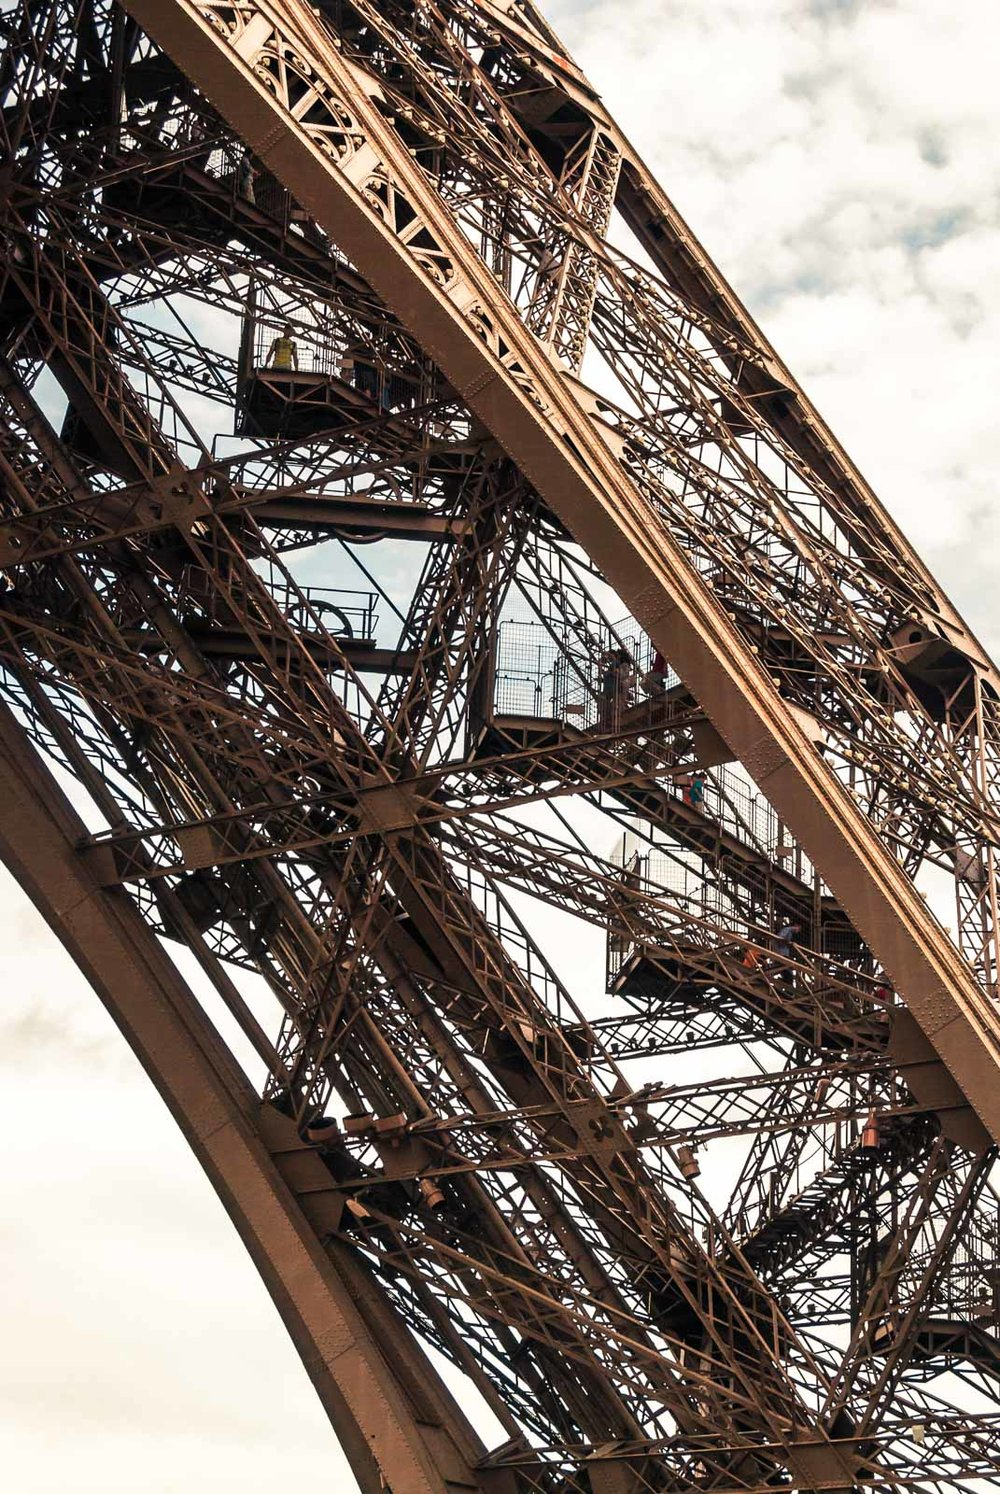 12_Paris-France-trip_Joseph-Barber-Photography.jpg